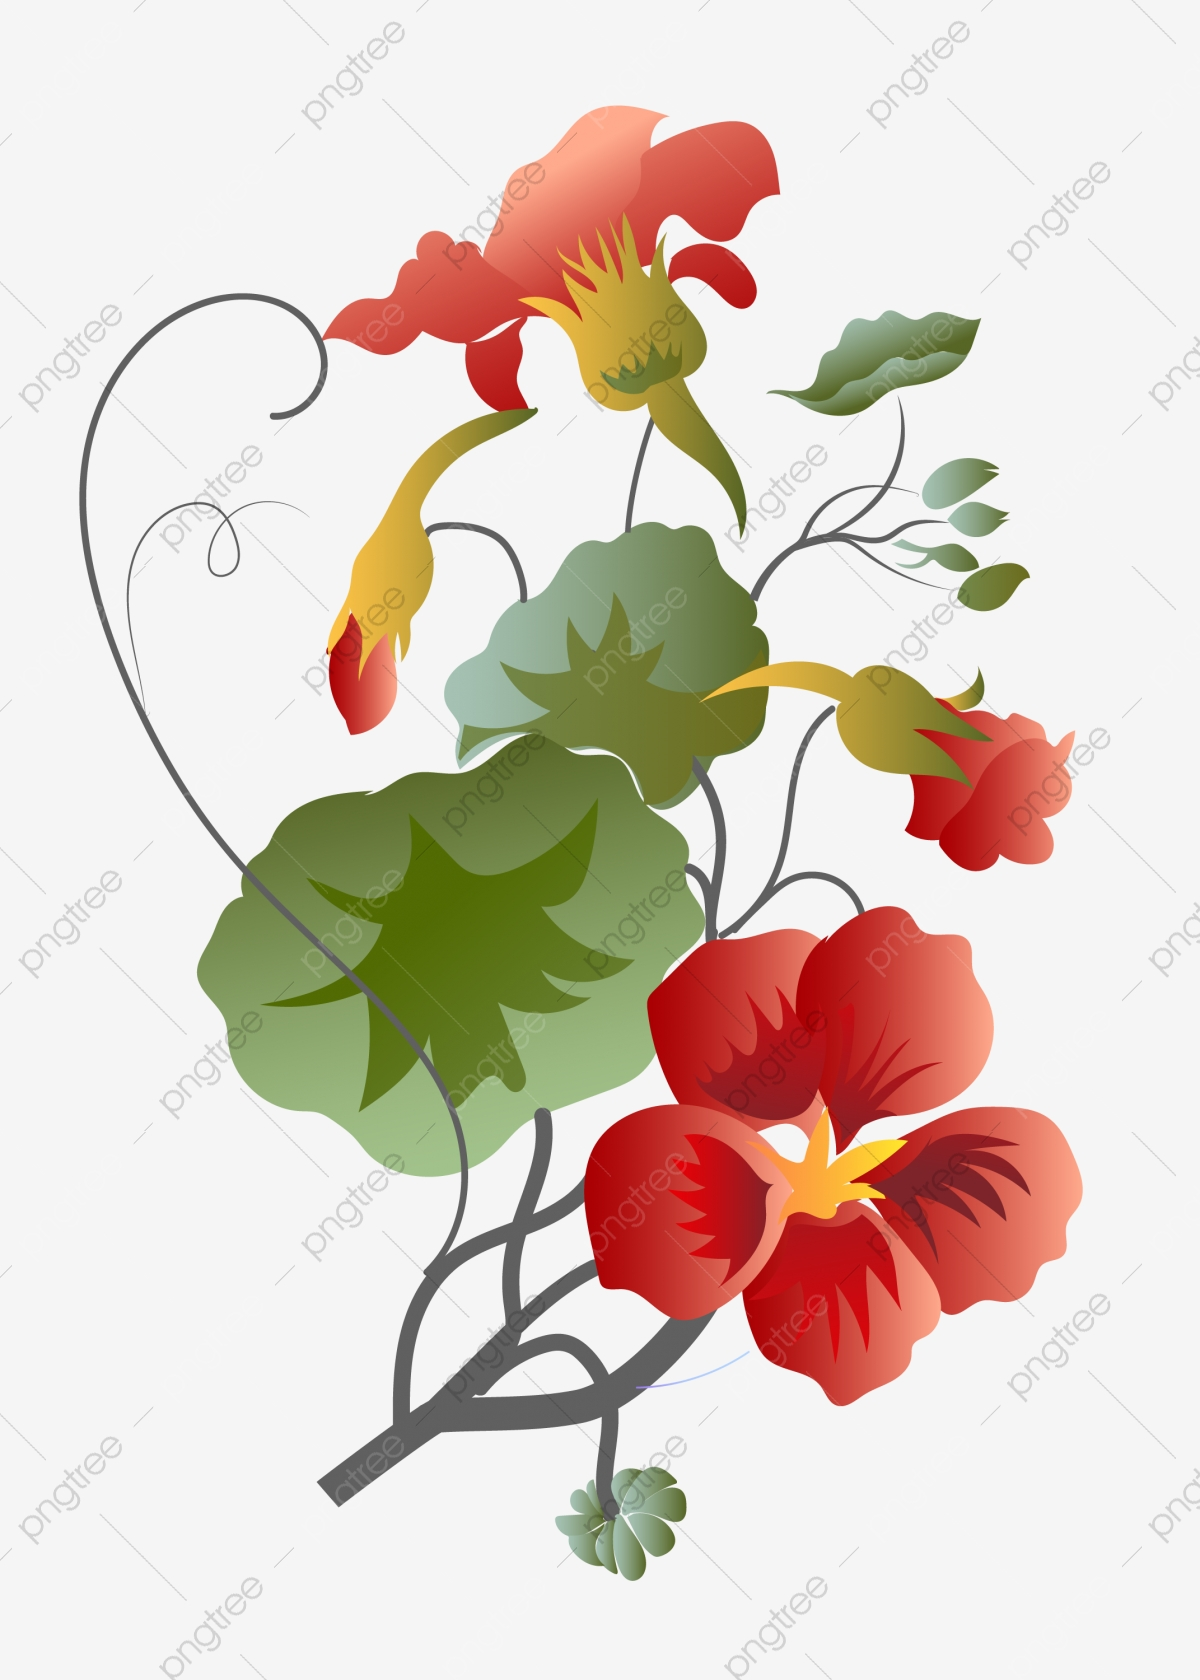 Red Beautiful Flower Vine Illustration Red Flowers Cartoon Illustration Flower Vine Illustration Png And Vector With Transparent Background For Free Download